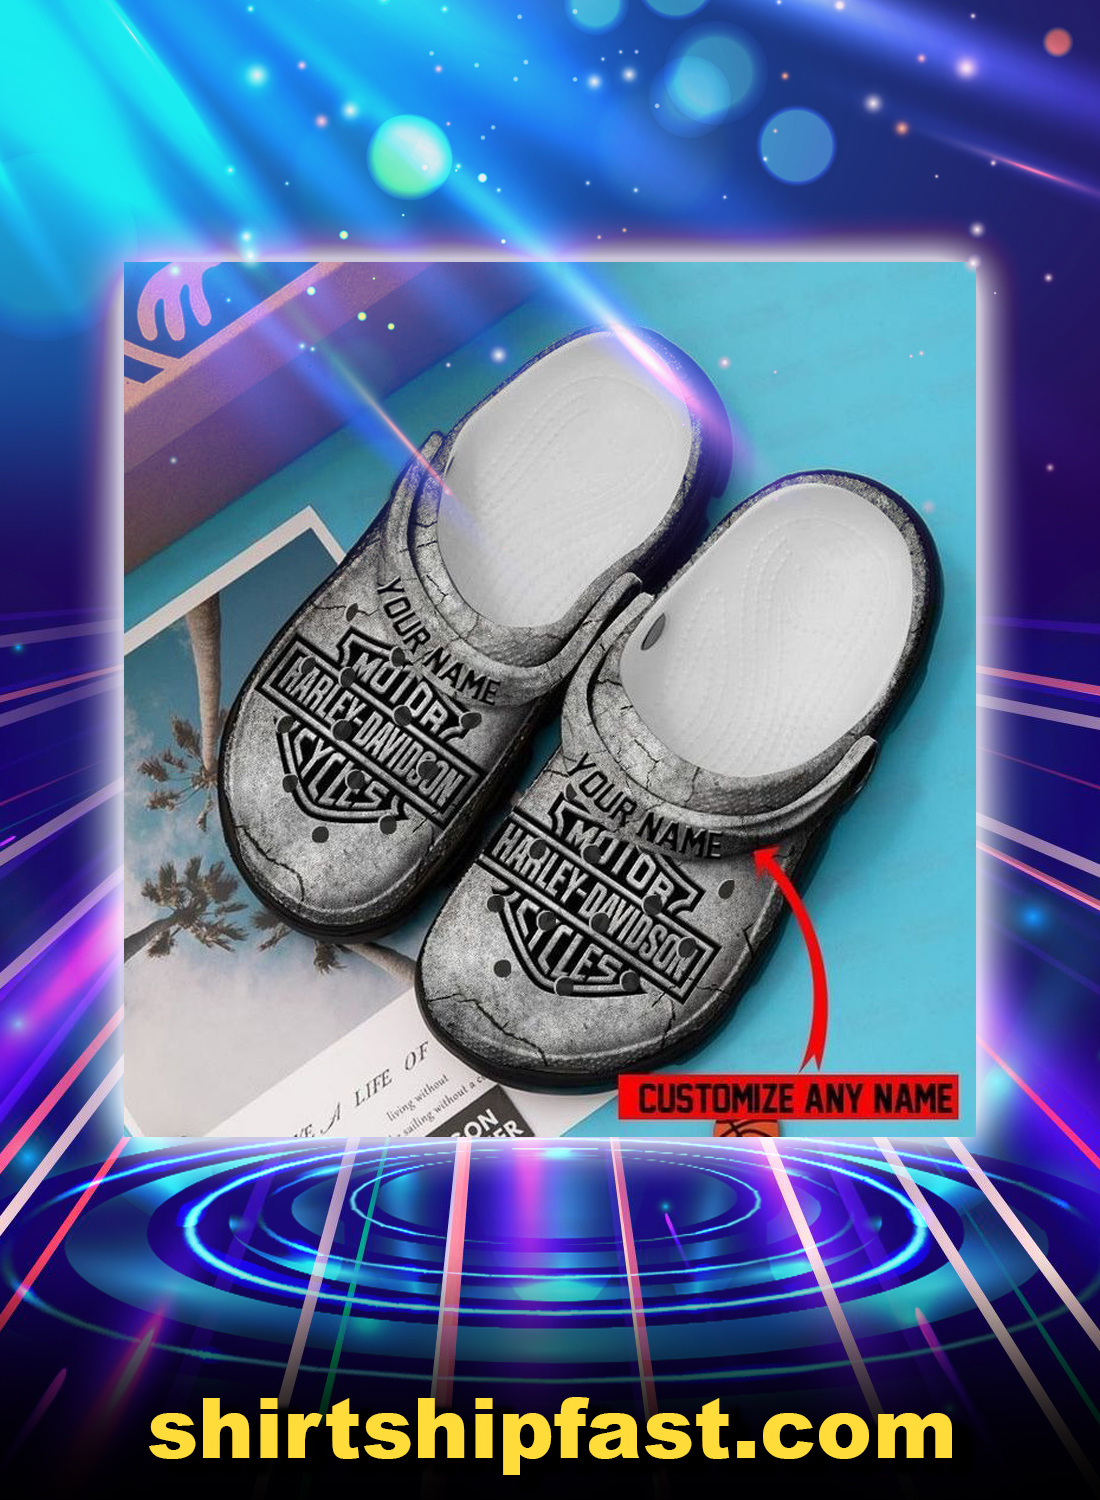 Harley davidson personalized custom name crocband crocs shoes - Picture 1